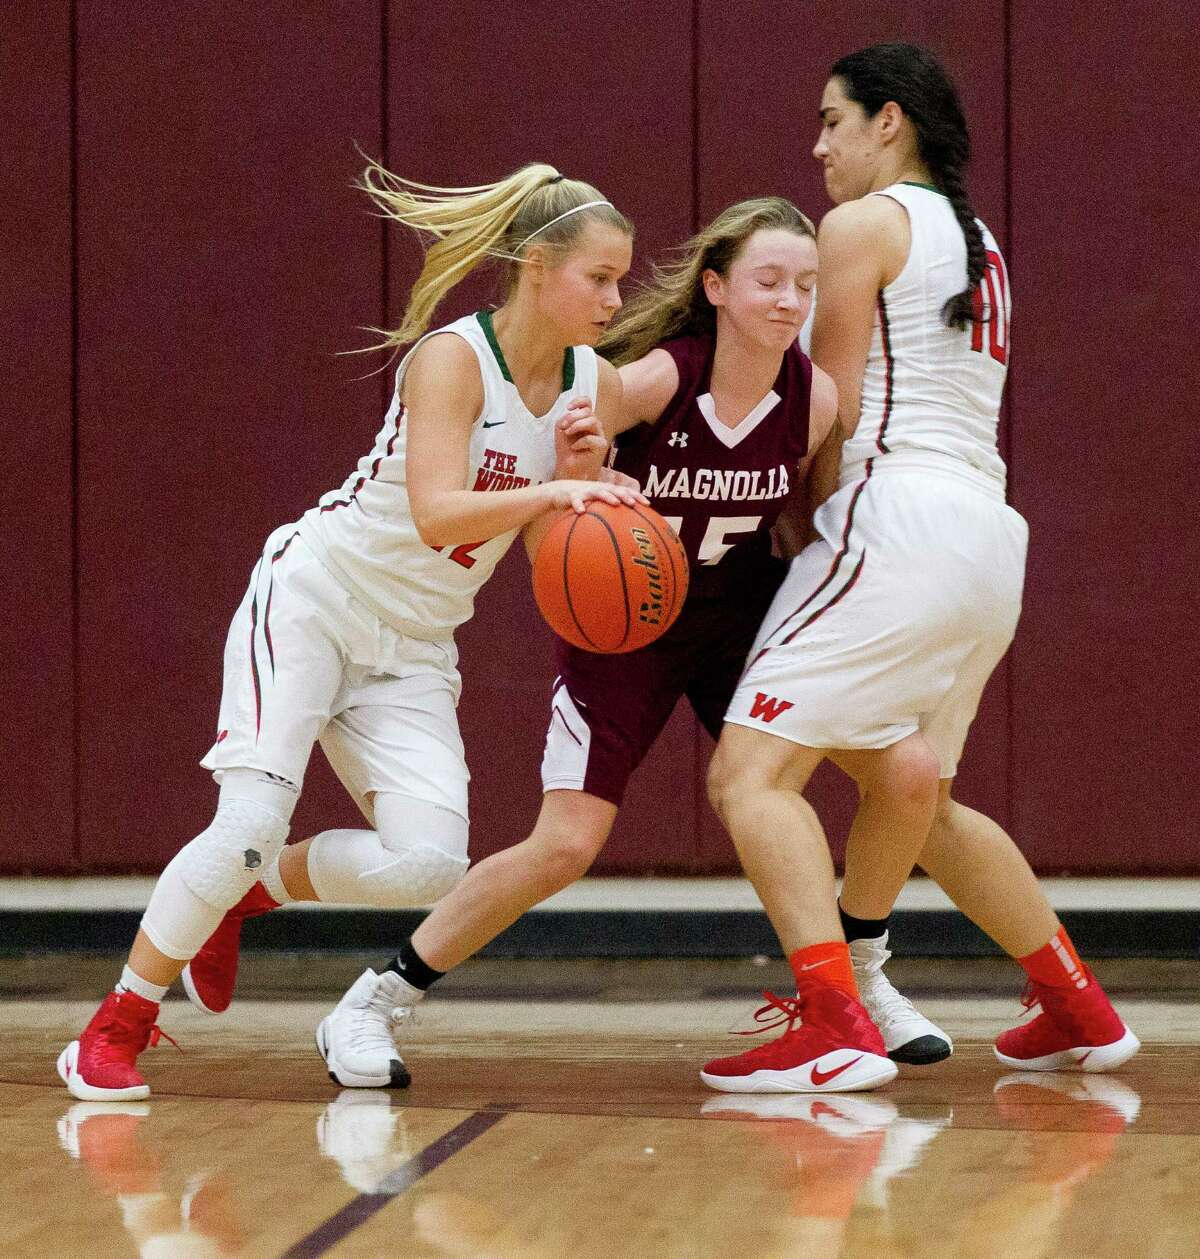 The Woodlands guard Sarah Butterfield (12) drives past Magnolia guard Abby Gibson (15) after a pick by forward Luisa De La Rosa (10) during the second quarter of a high school girls basketball game at the Magnolia Holiday Hoop Fest Friday, Dec. 30, 2016, in Magnolia.